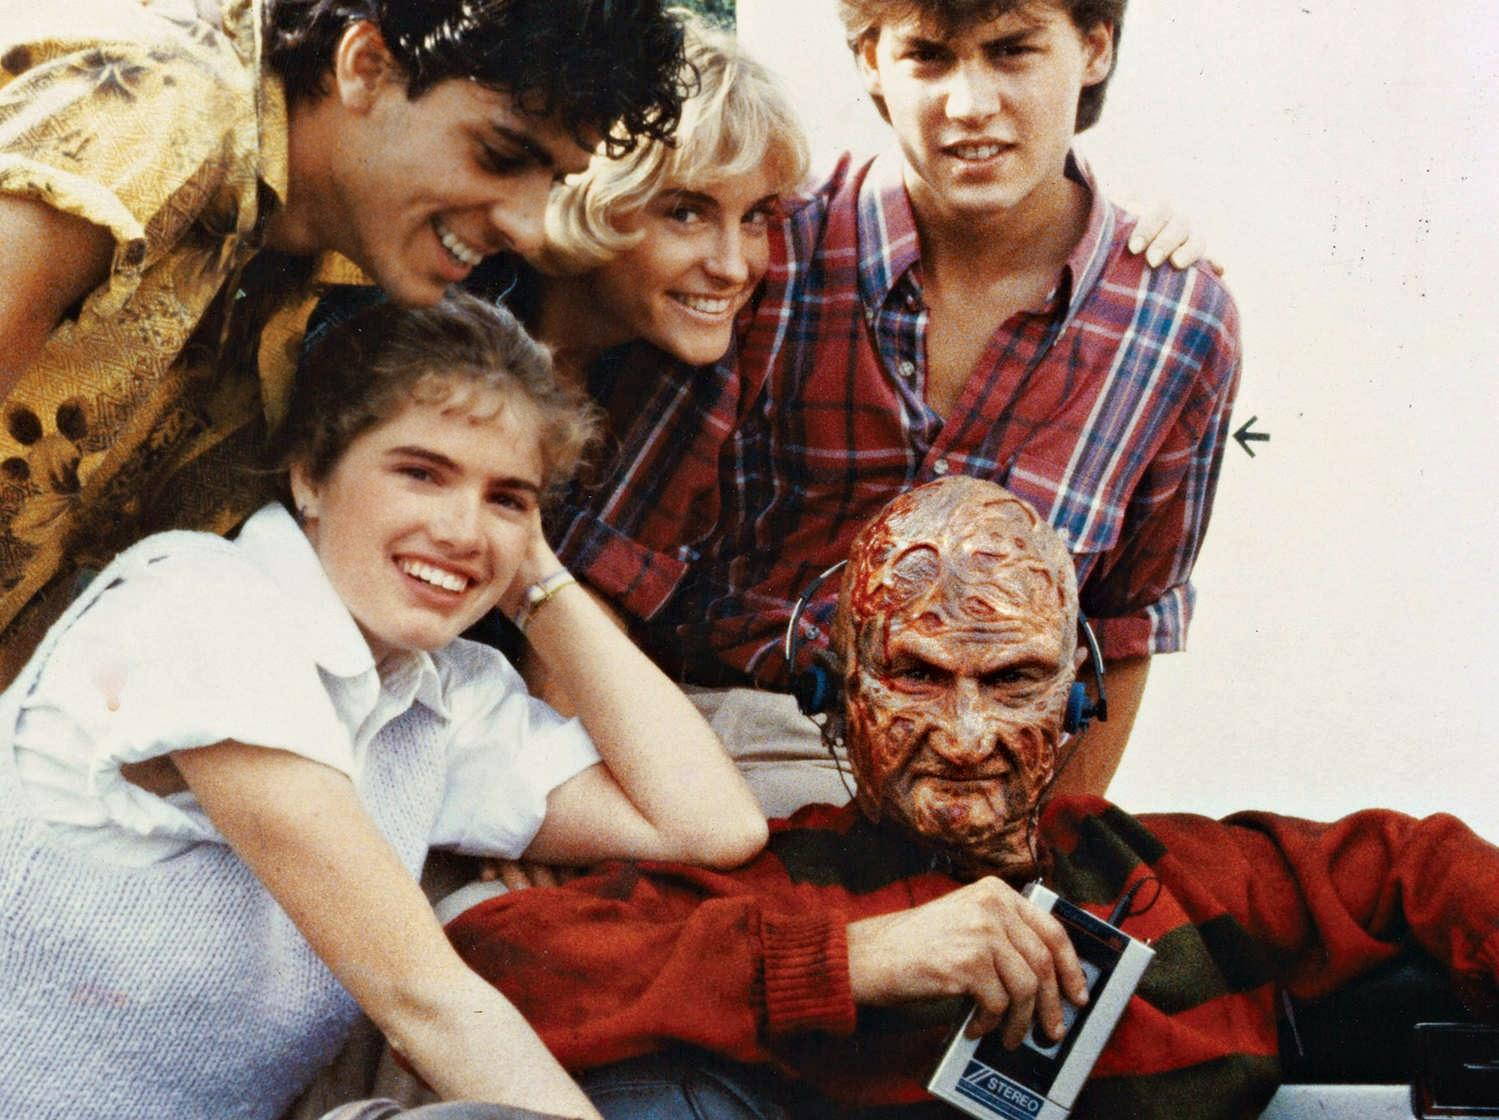 What if the Nightmare on Elm Street Kids Had Been on Facebook?